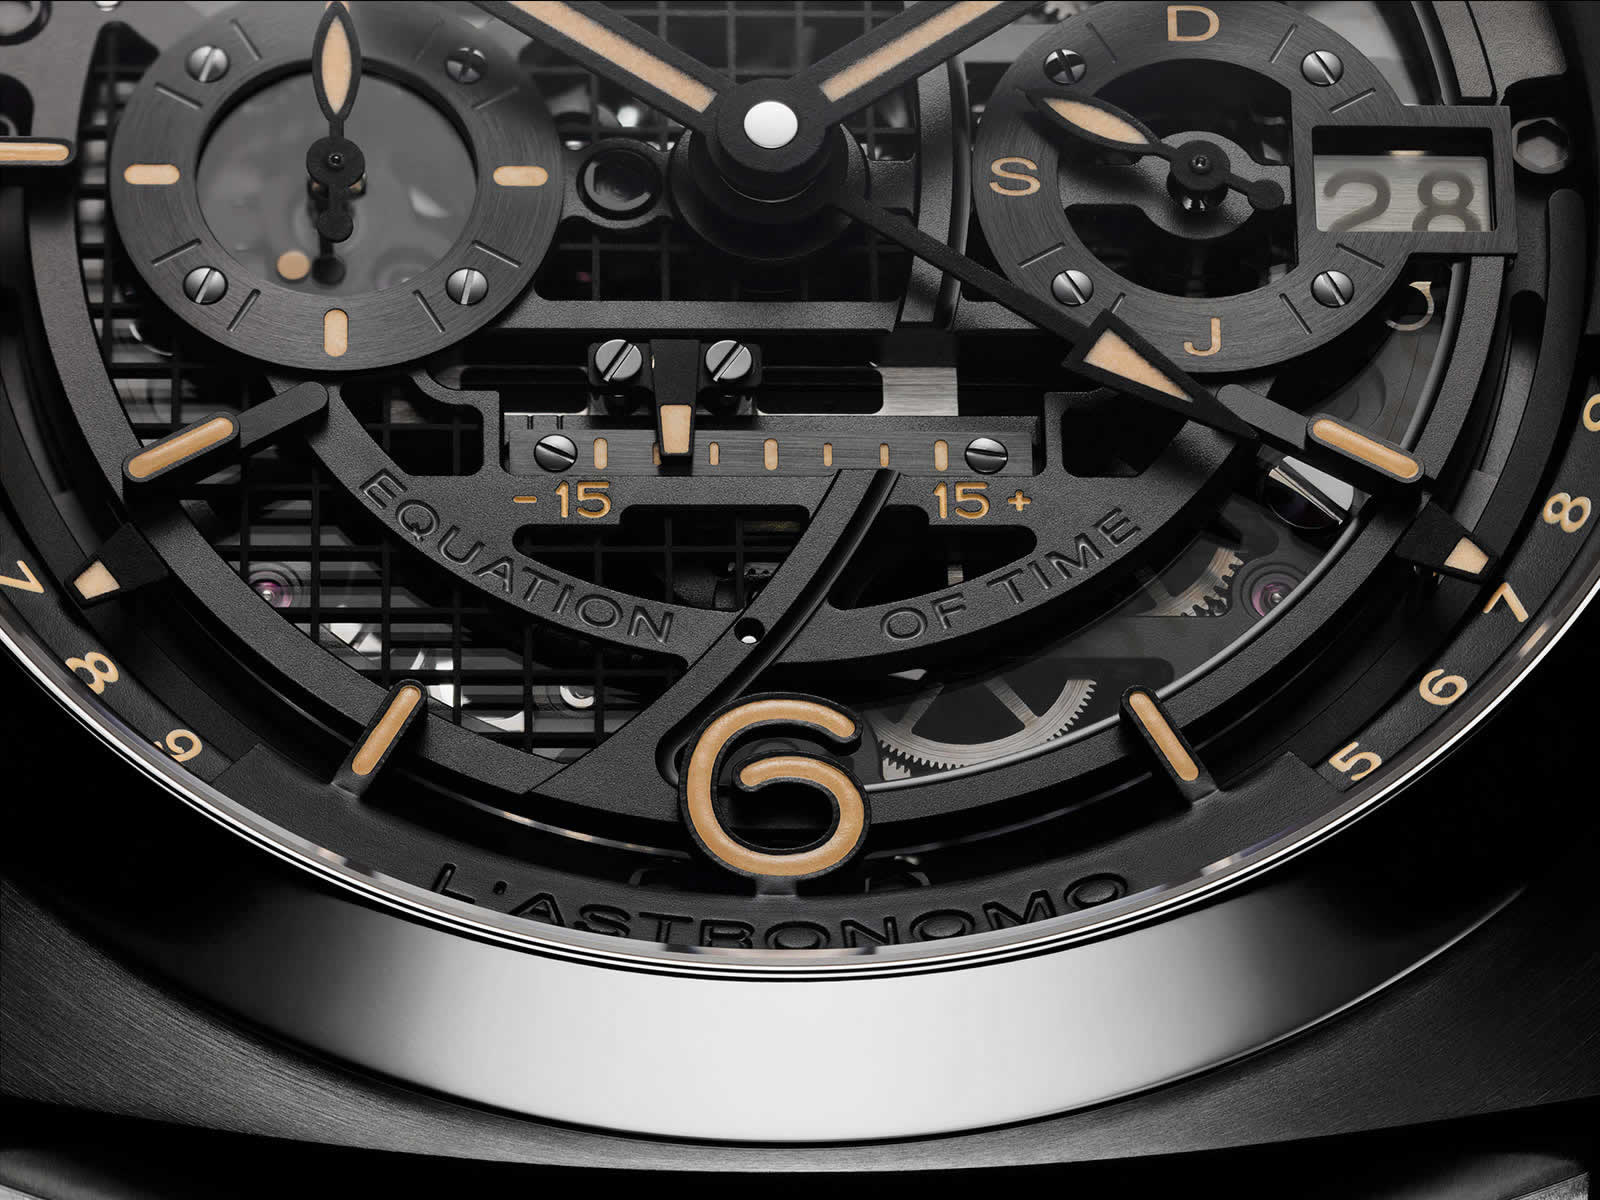 Panerai-L-Astronomo-Luminor-1950-Tourbillon-Moon-Phases-Equation-of-Time-Gmt-Pam00920-6.jpg